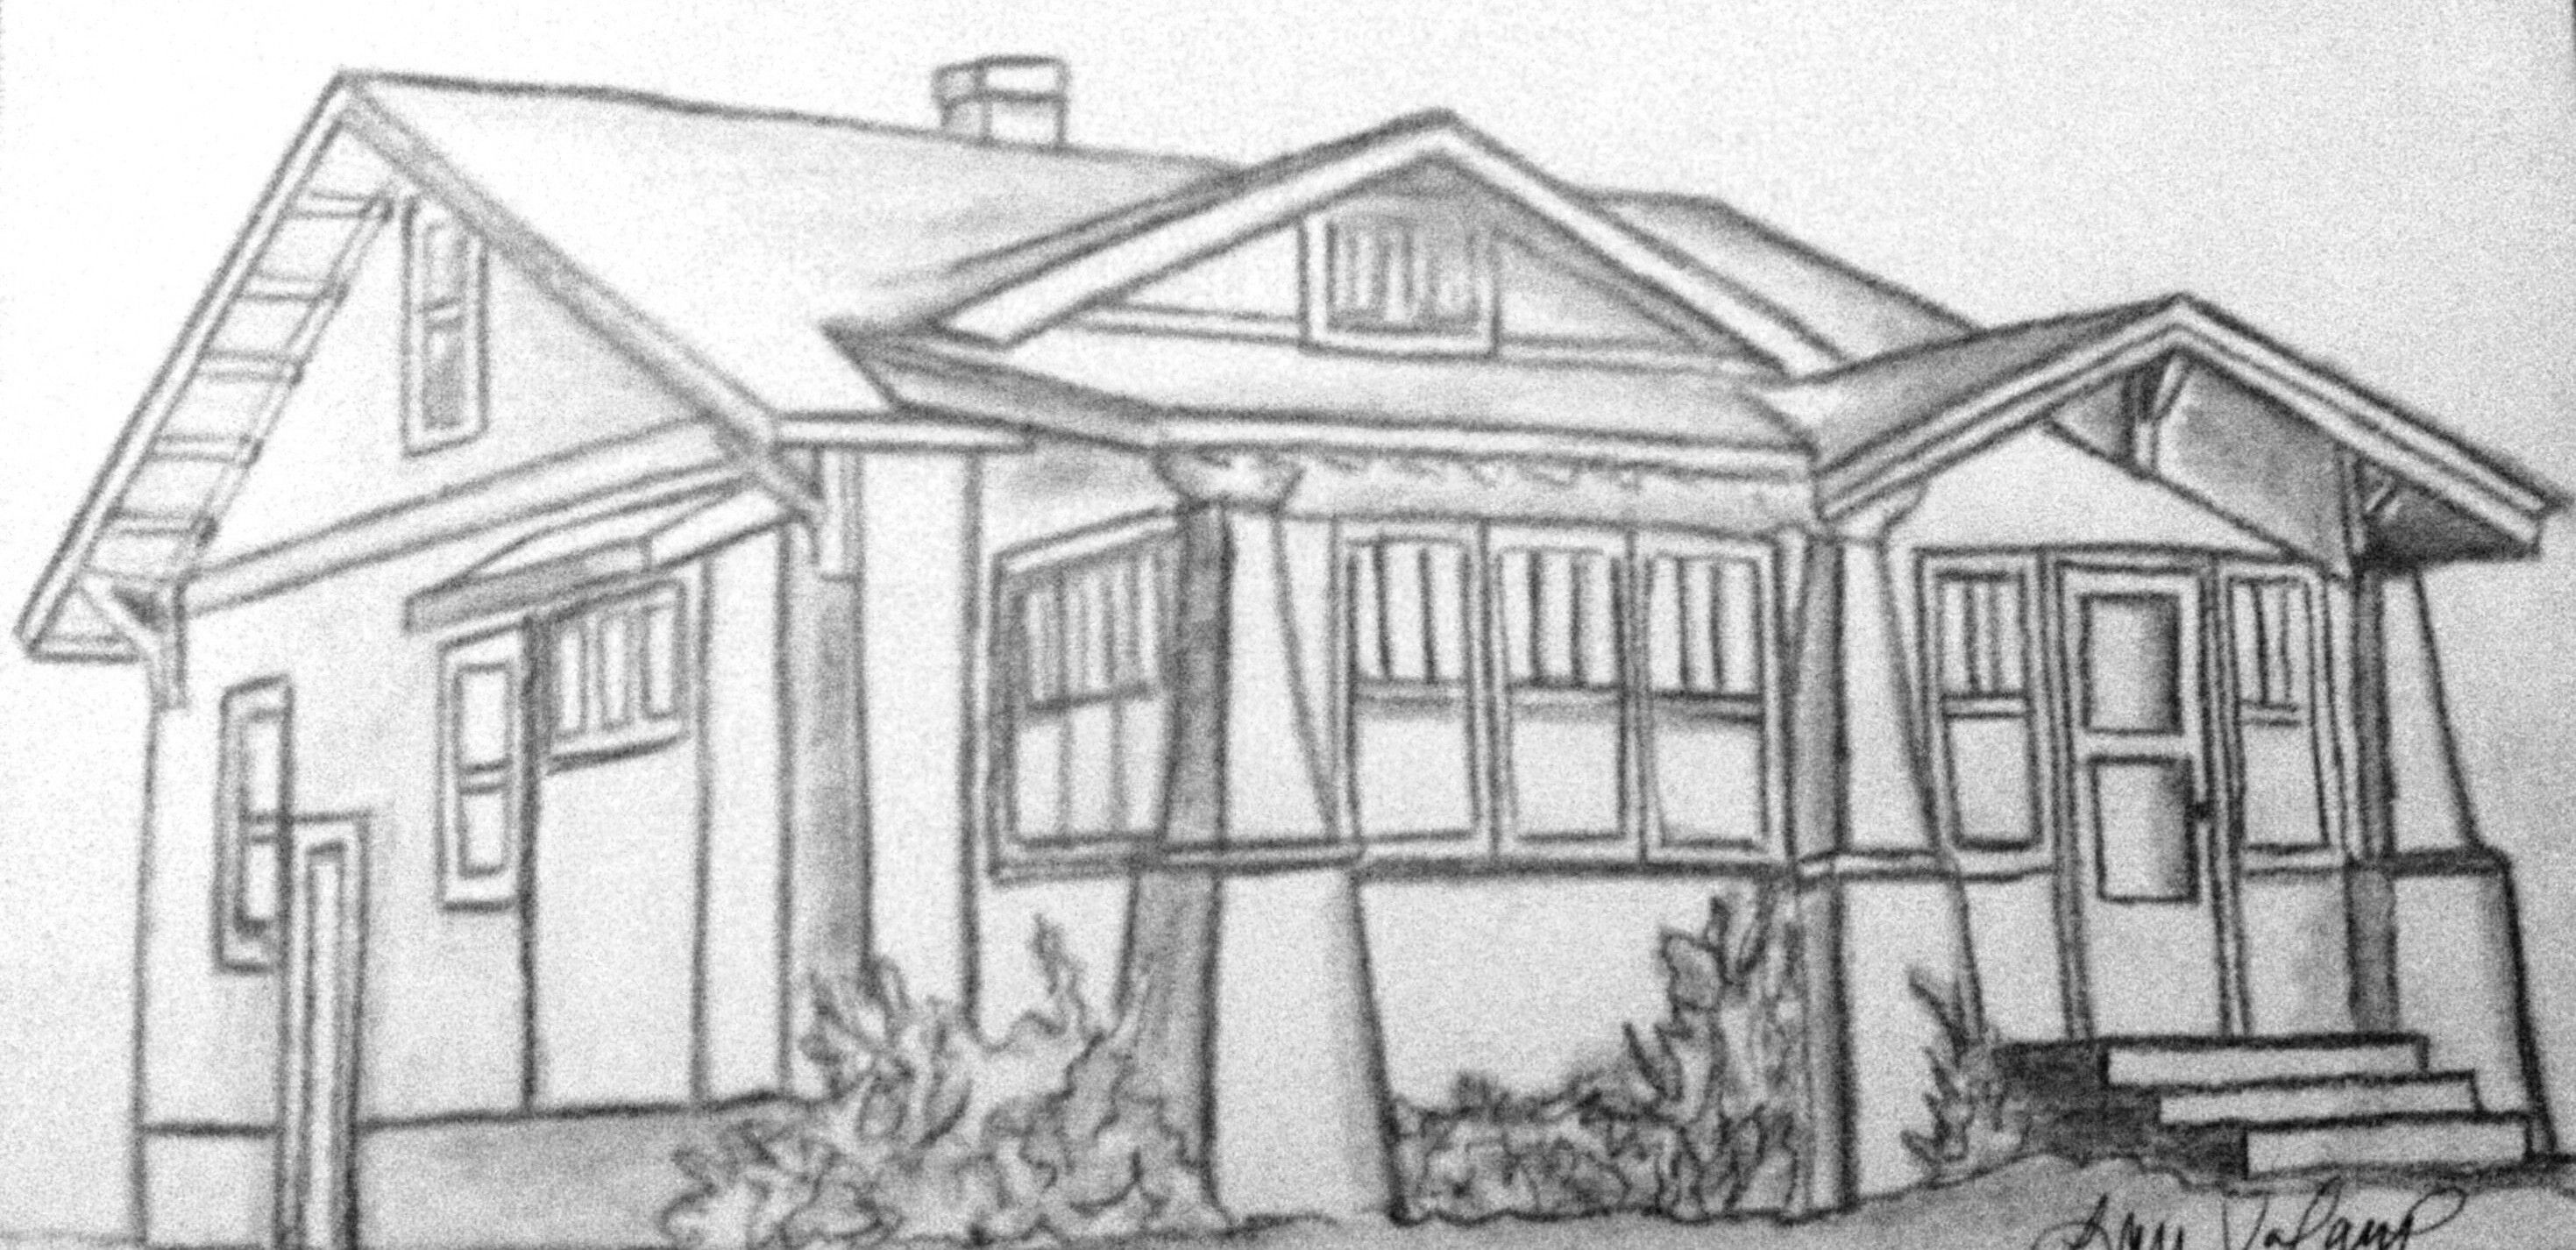 House drawing drawing class pinterest for House sketches from photos